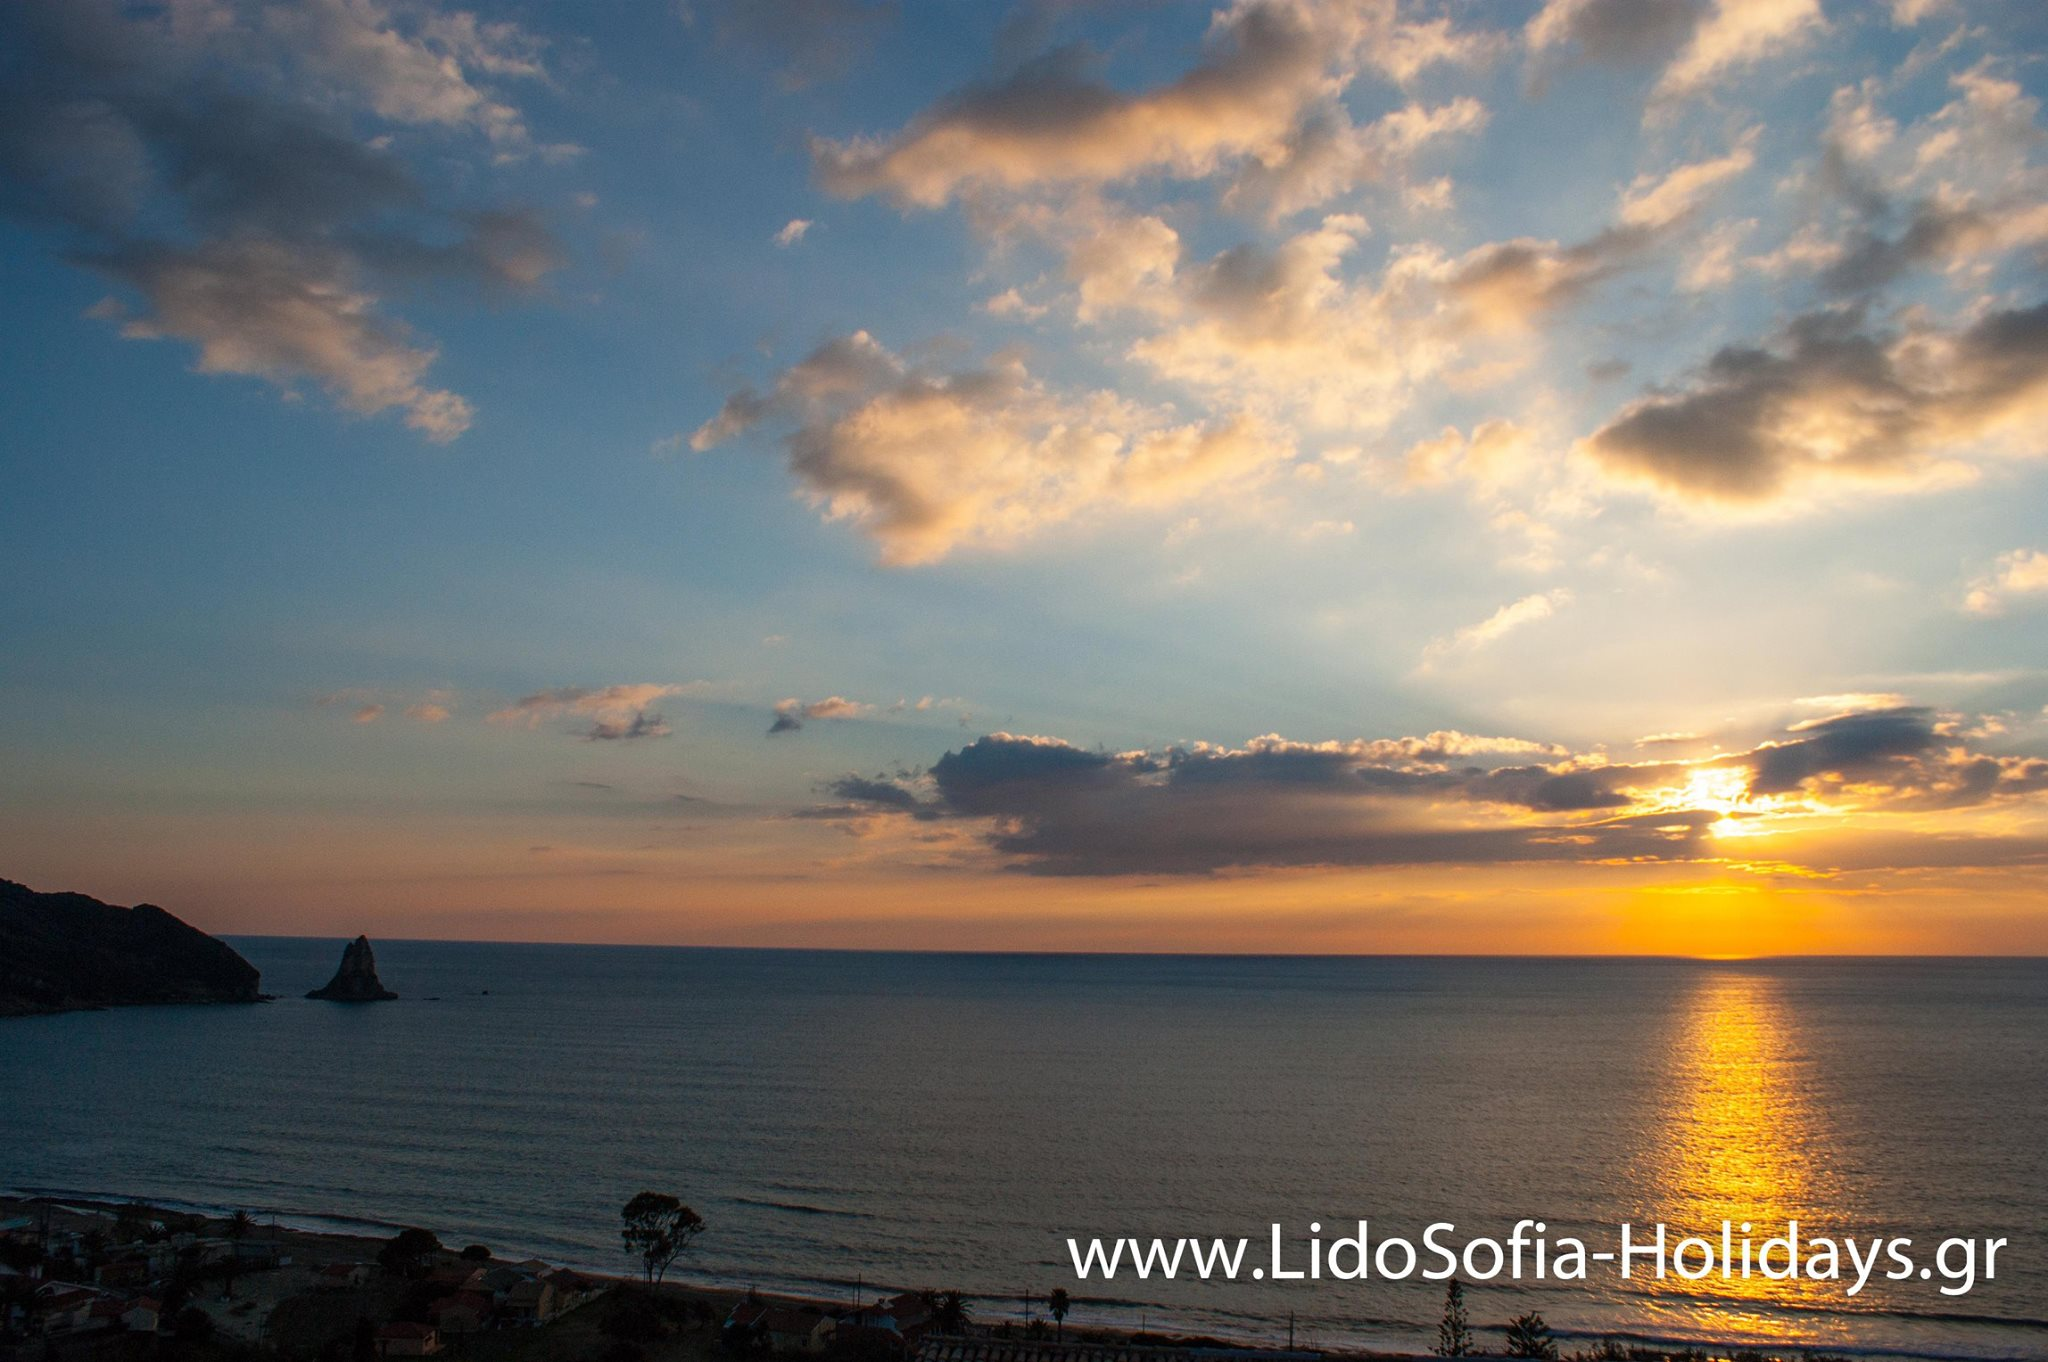 Lido Sofia Holidays Apartments Agios Gordios